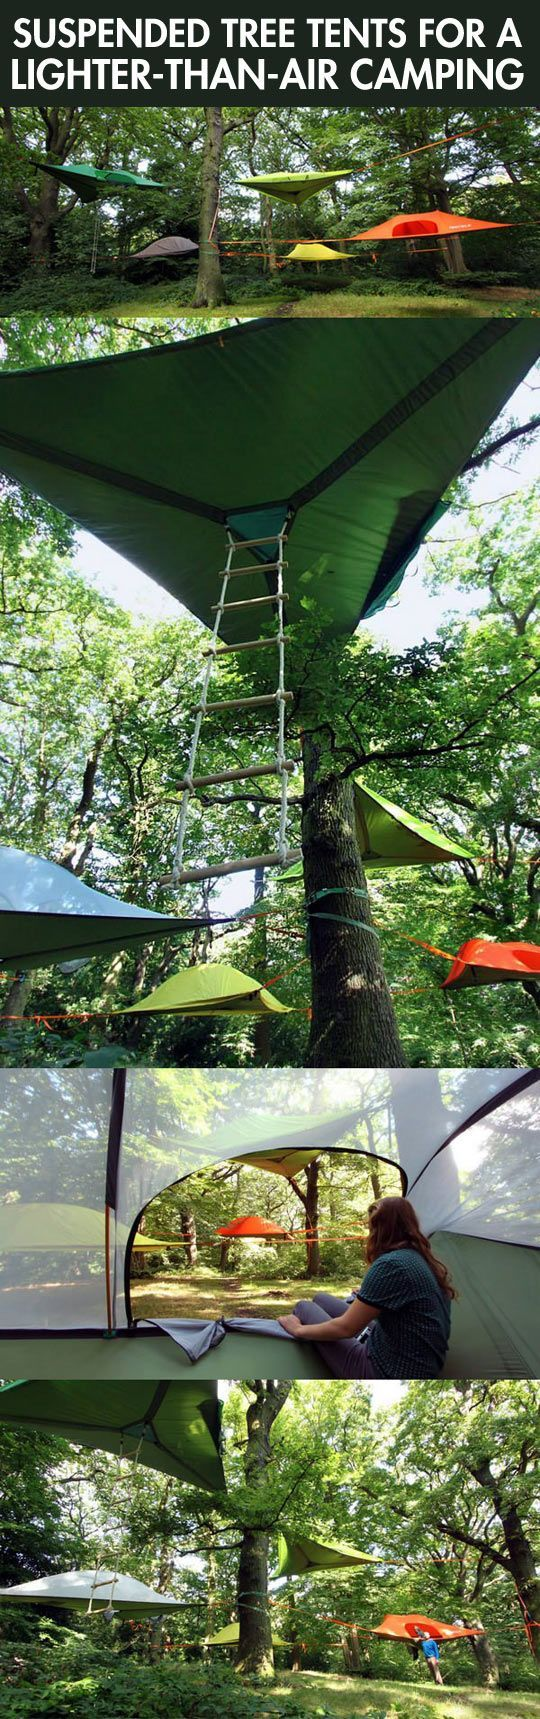 Tree tentsawesome! Ideal for zombie apocalypse